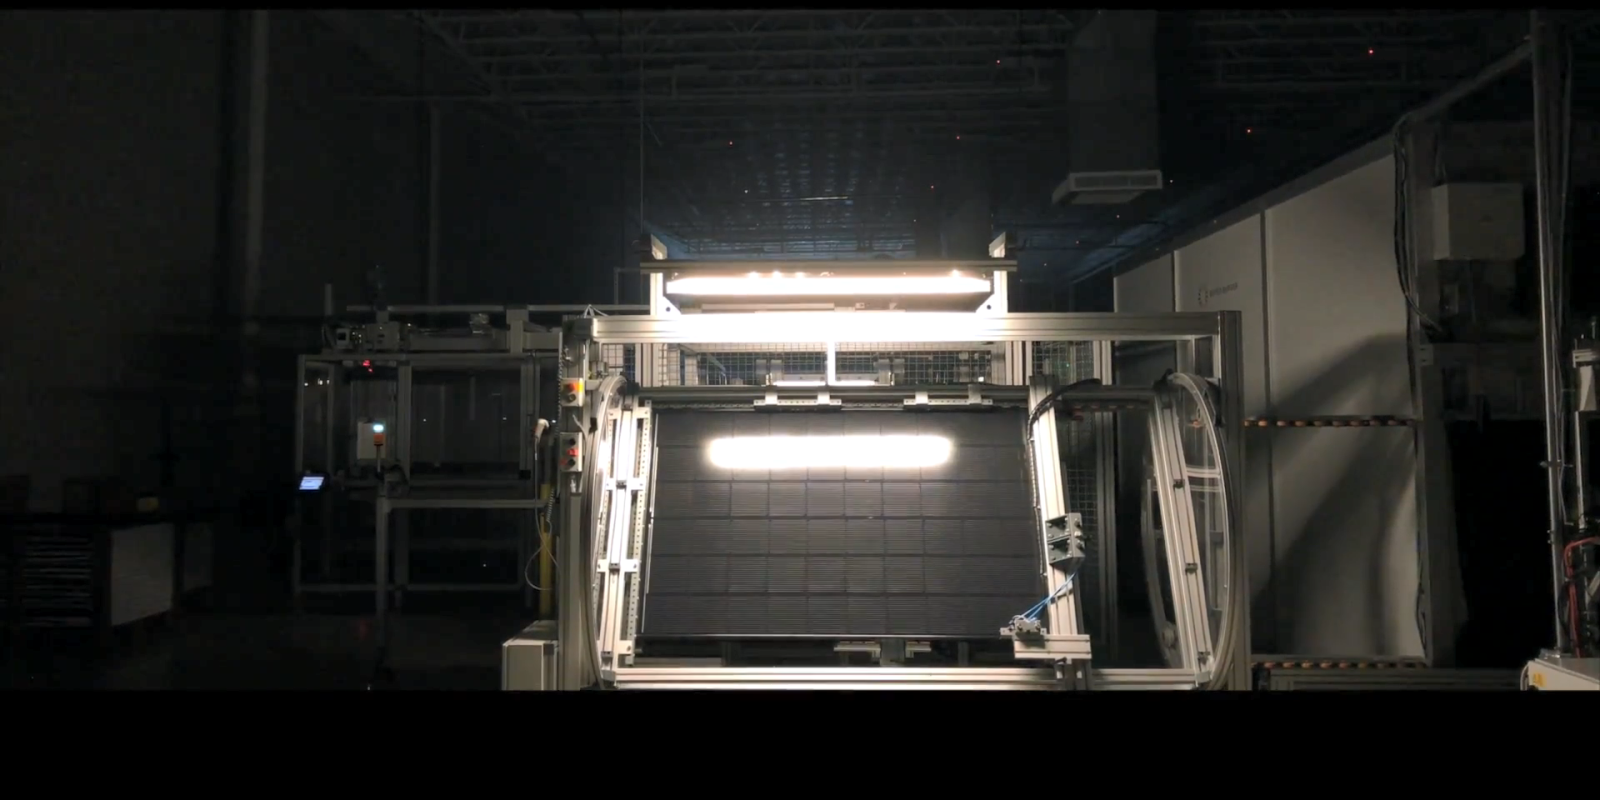 Solar panel efficiency 'research race' ongoing as technology dashes toward records